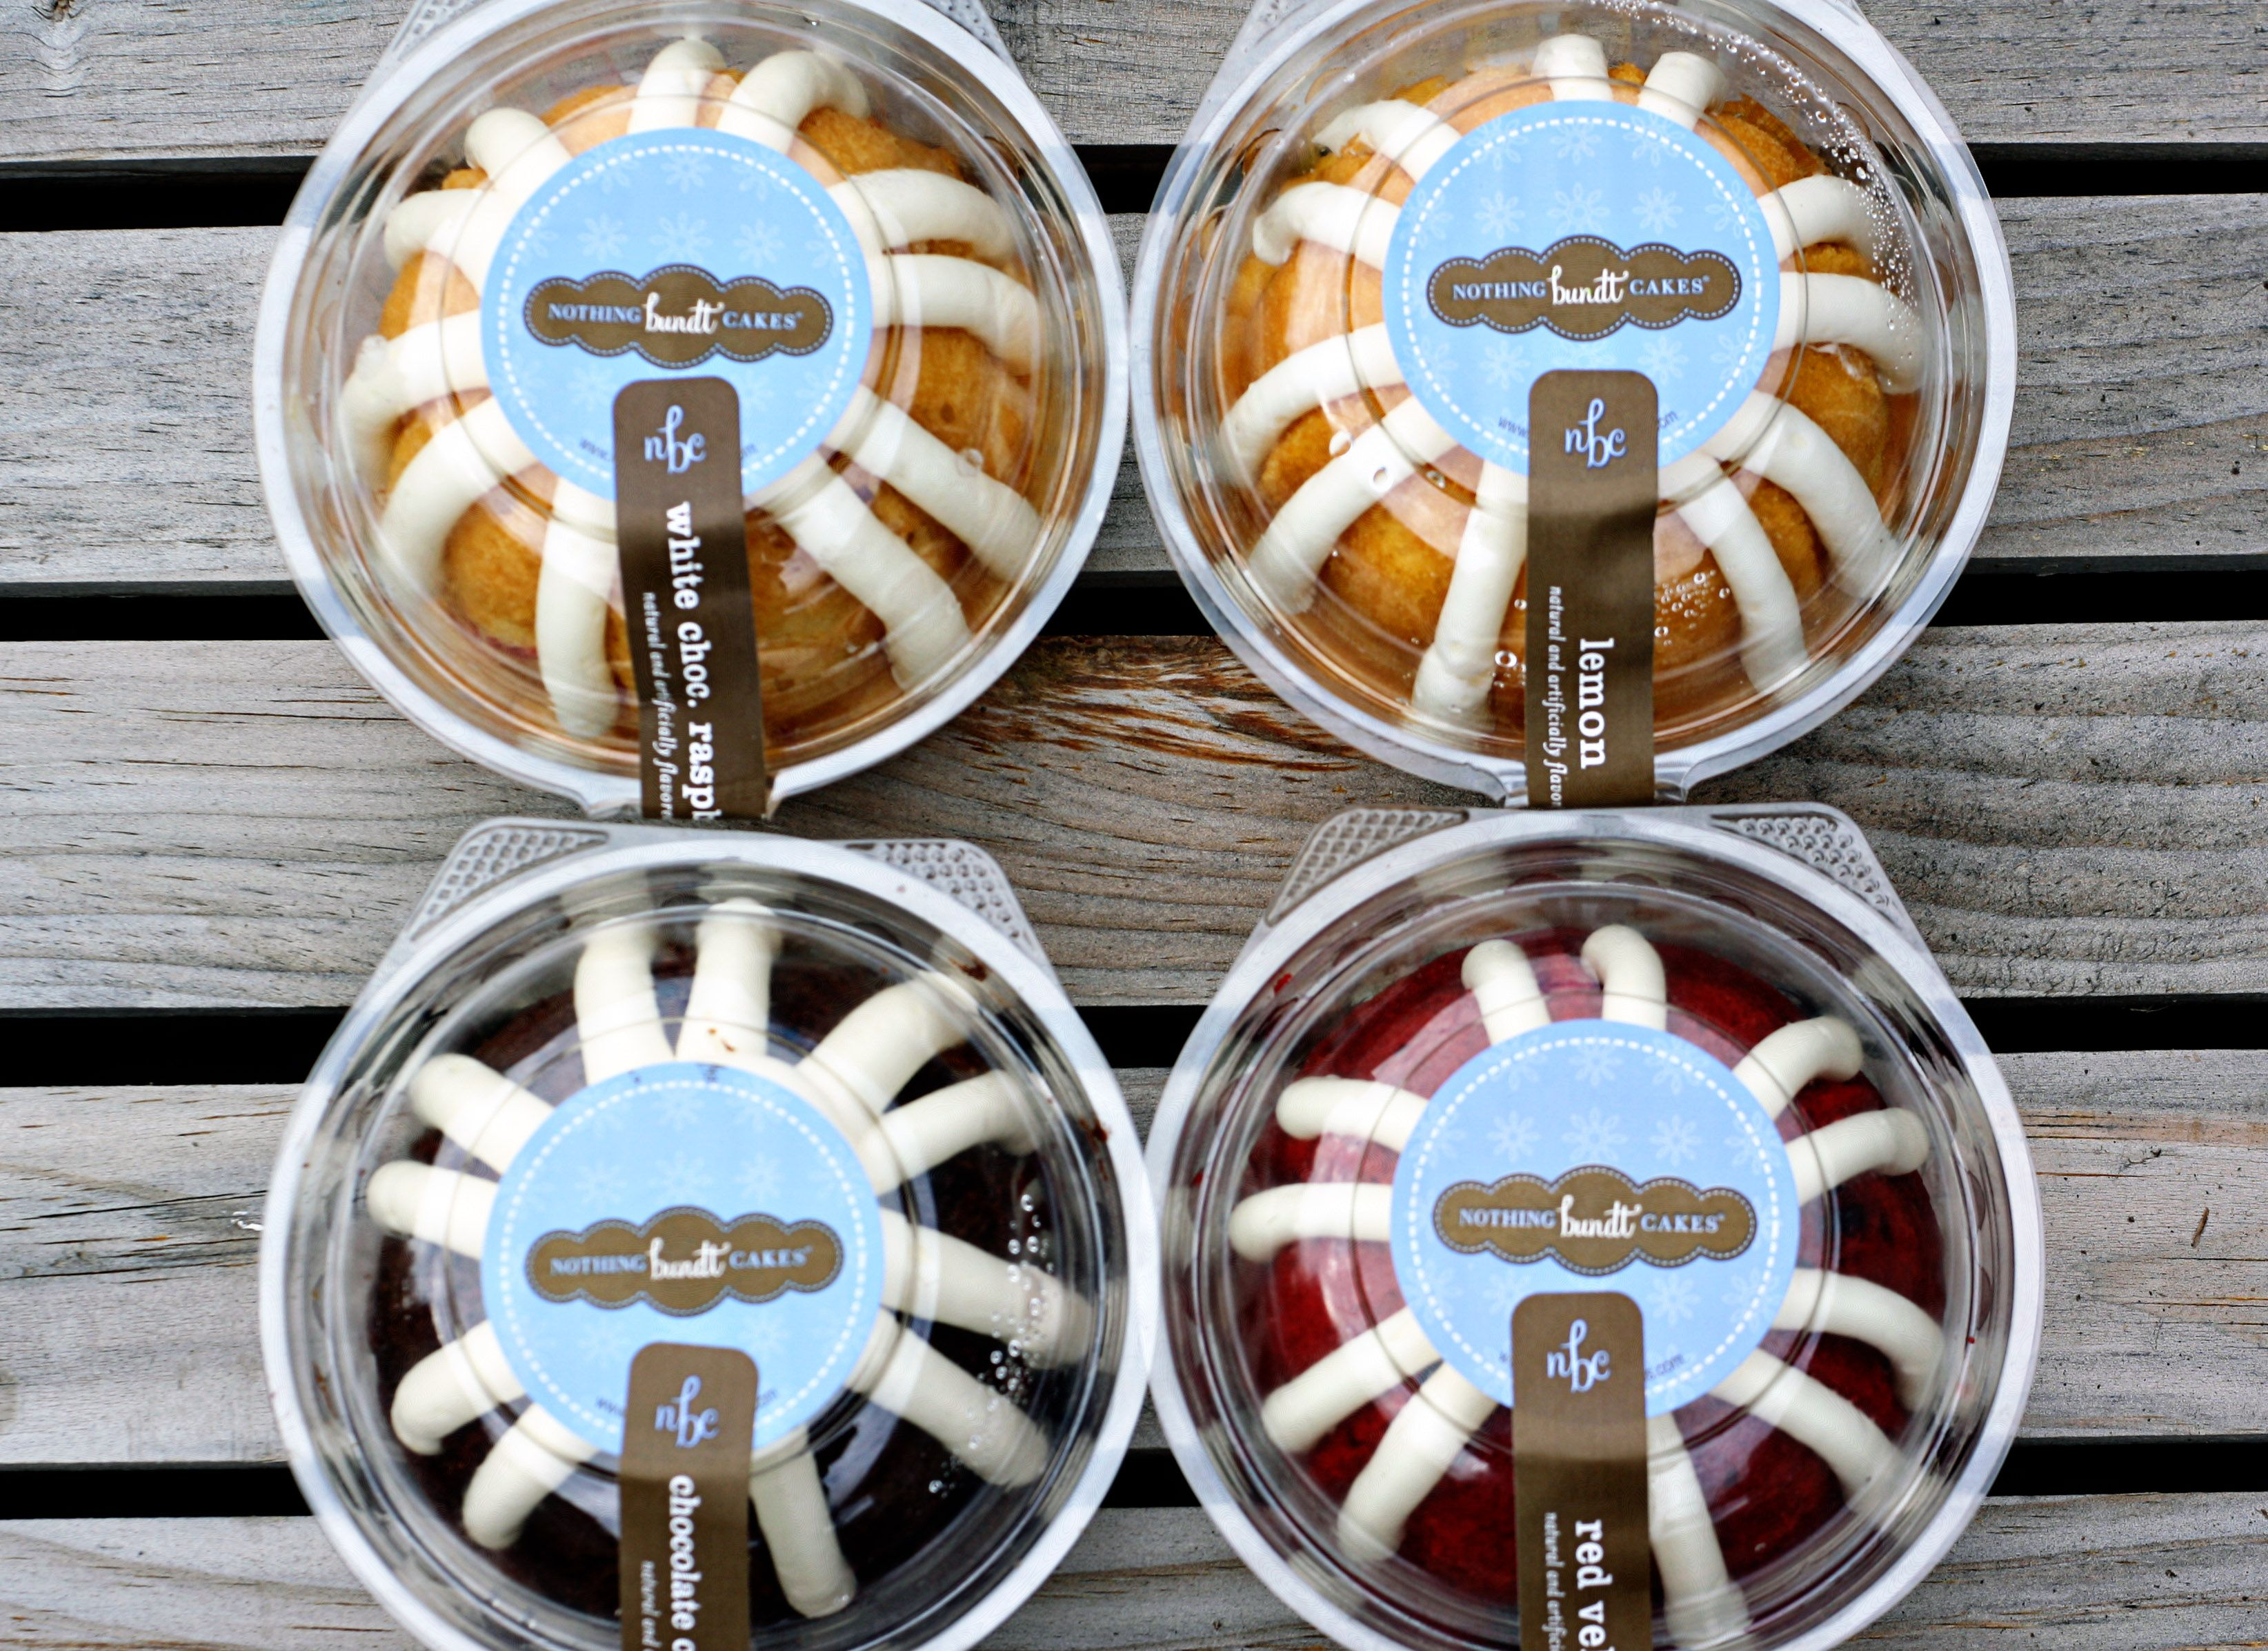 Nothing Bundt Cakes Locations In Texas